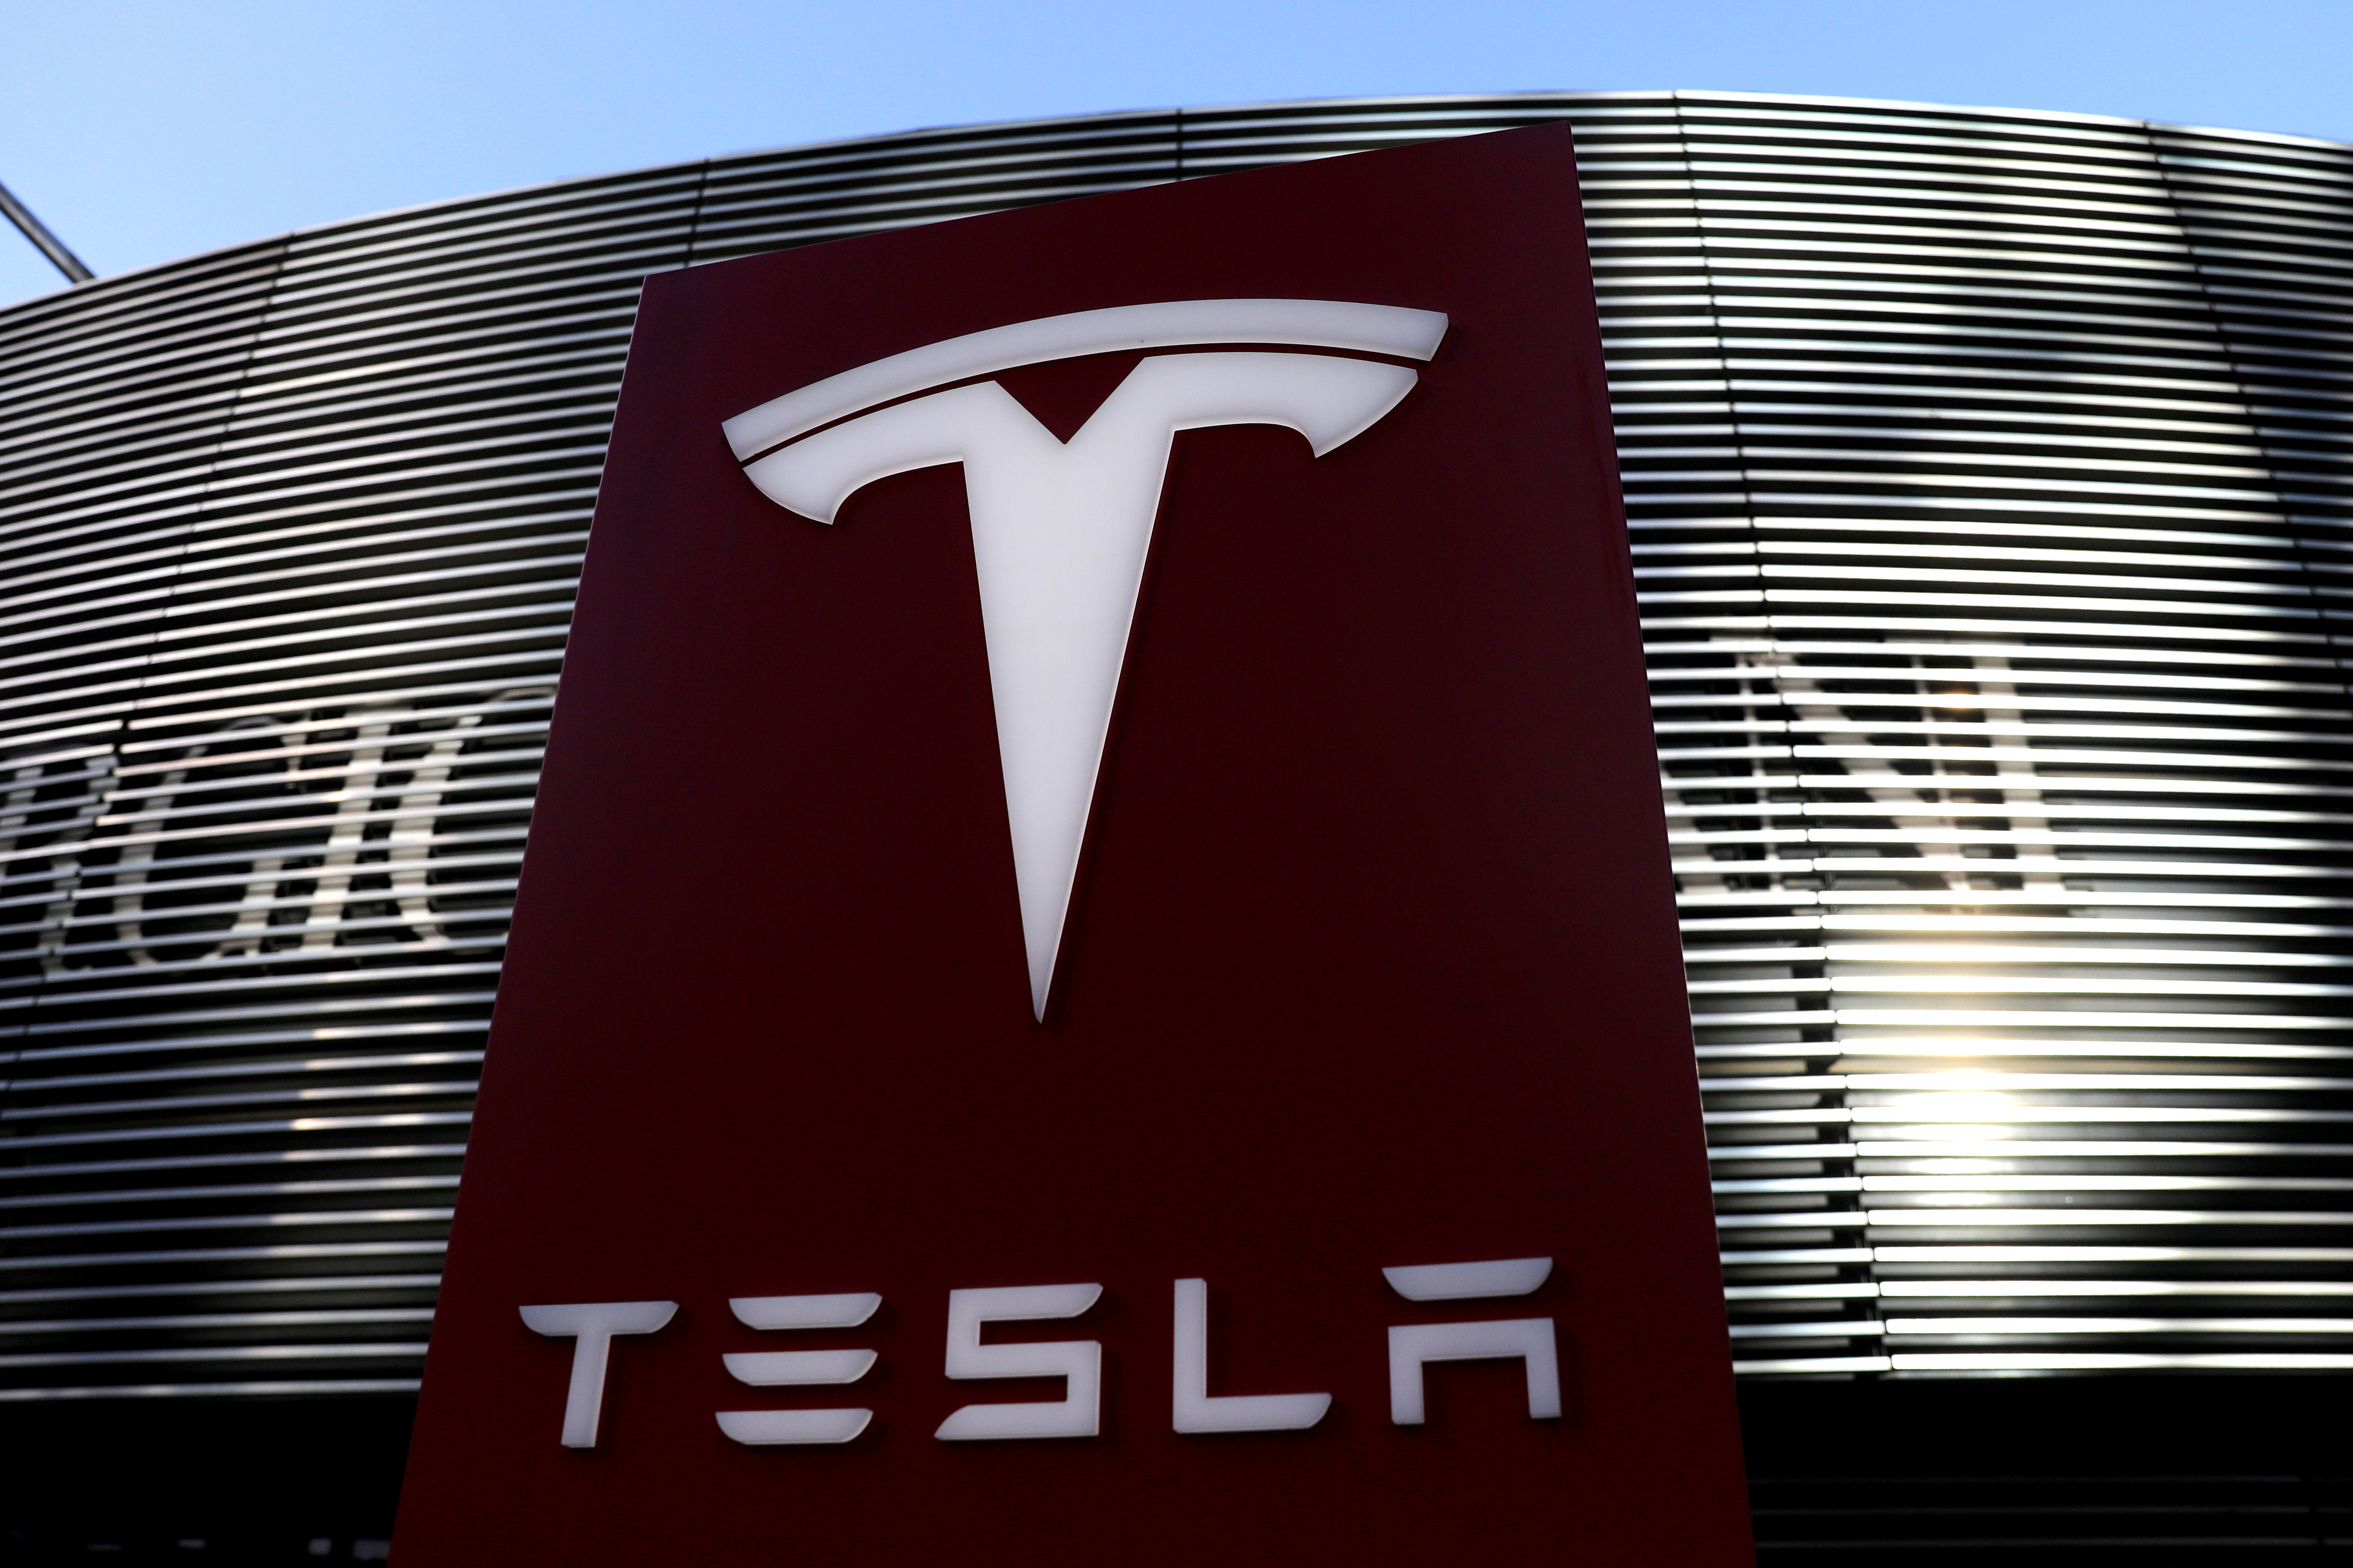 A logo of the electric vehicle maker Tesla is seen near a shopping complex in Beijing, China January 5, 2021. REUTERS/Tingshu Wang/File Photo